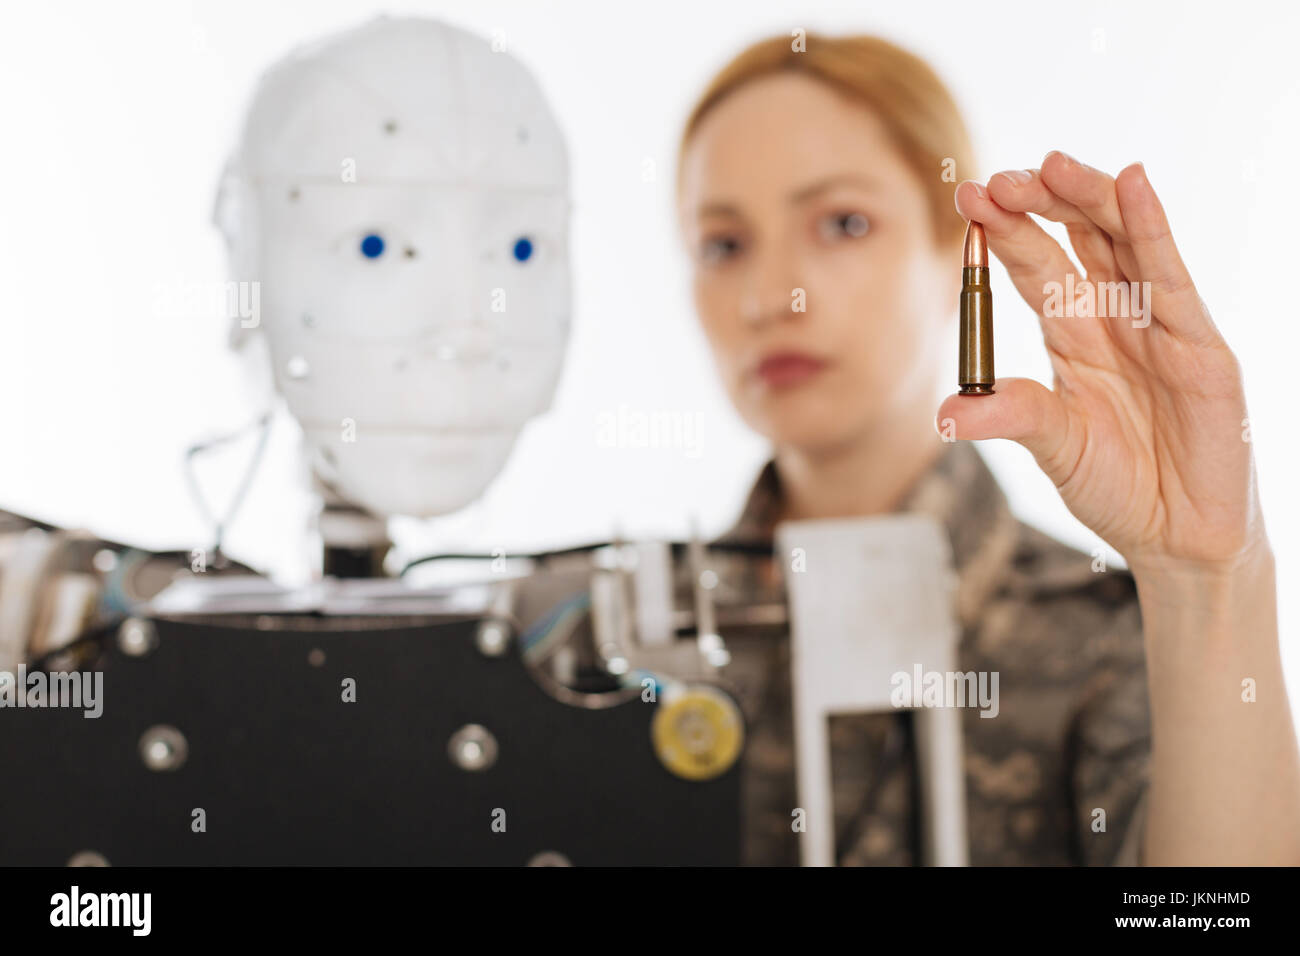 Ambitious confident officer using technology for military purposes - Stock Image